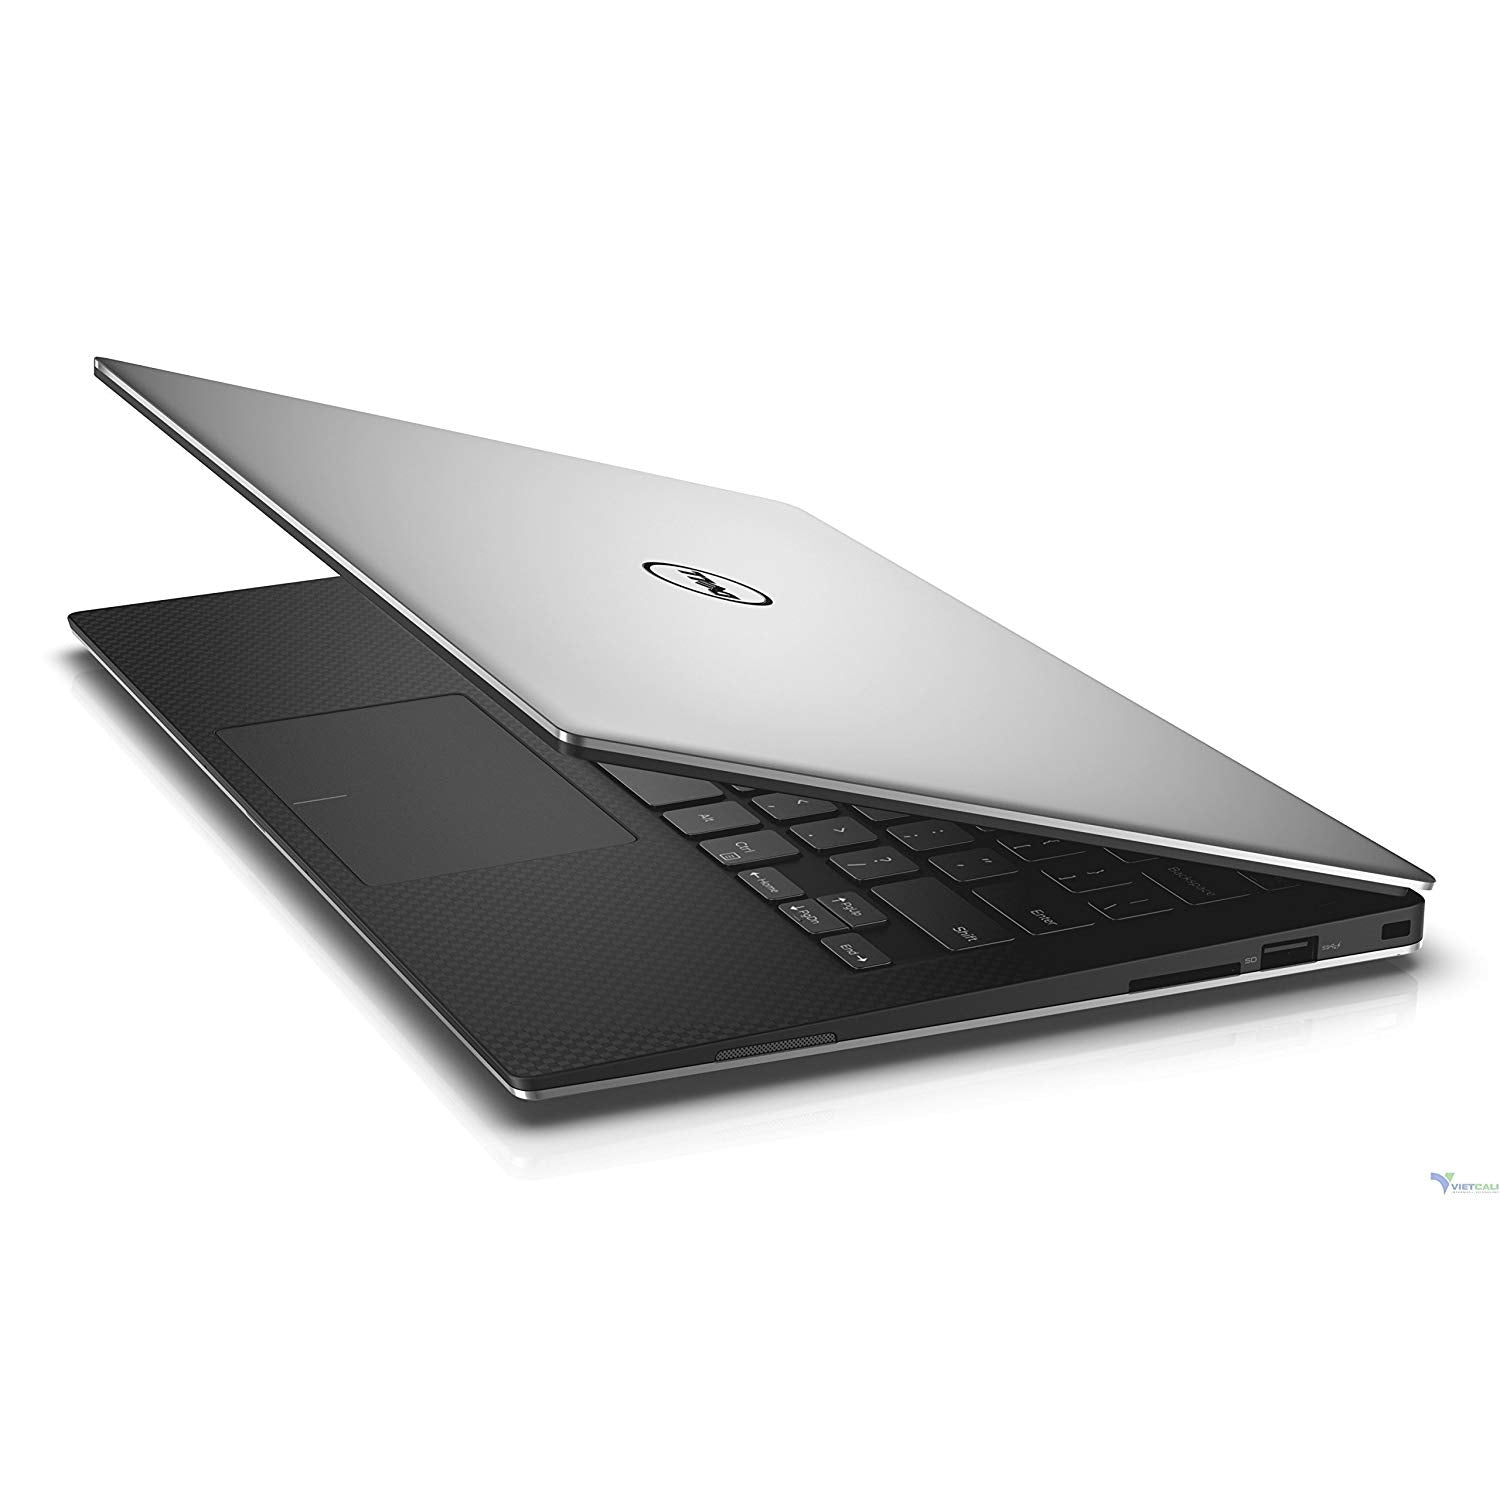 "Dell XPS 13 9360 13.3"" Full HD Anti-Glare InfinityEdge Touchscreen Laptop Intel 7th Gen Kaby Lake i5 7200U 8GB RAM 128GB SSD"